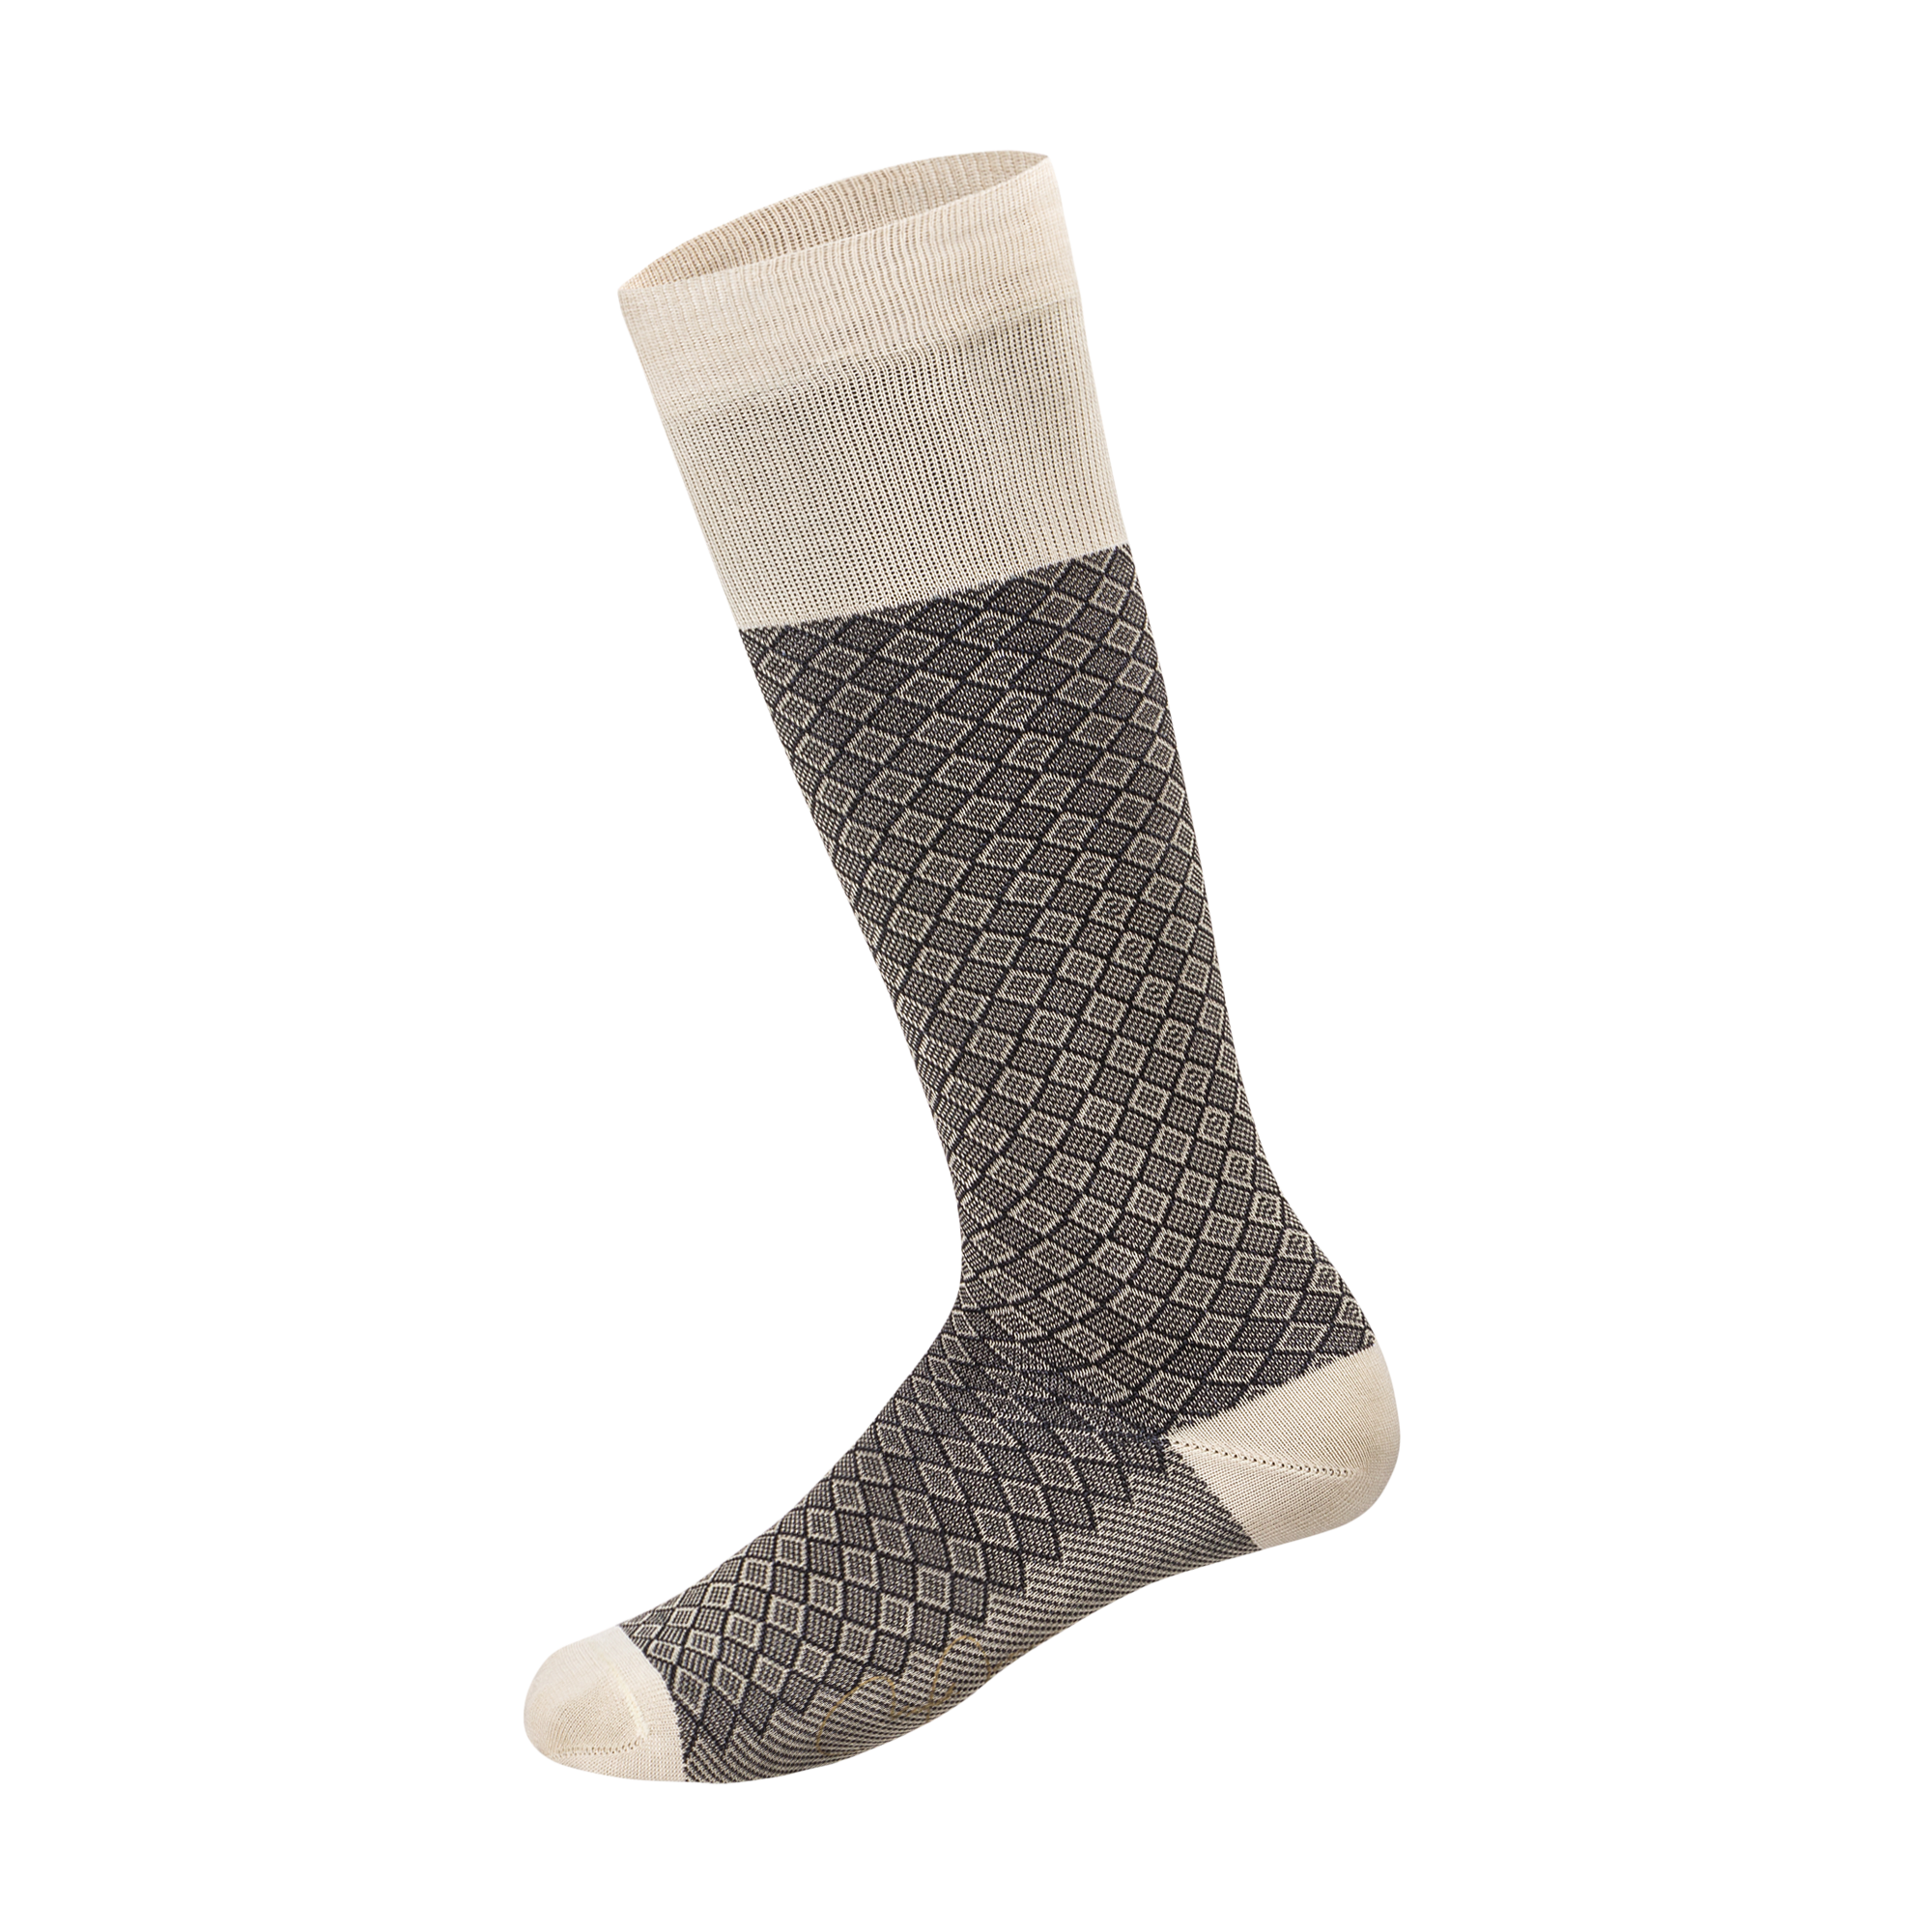 white Socks product image